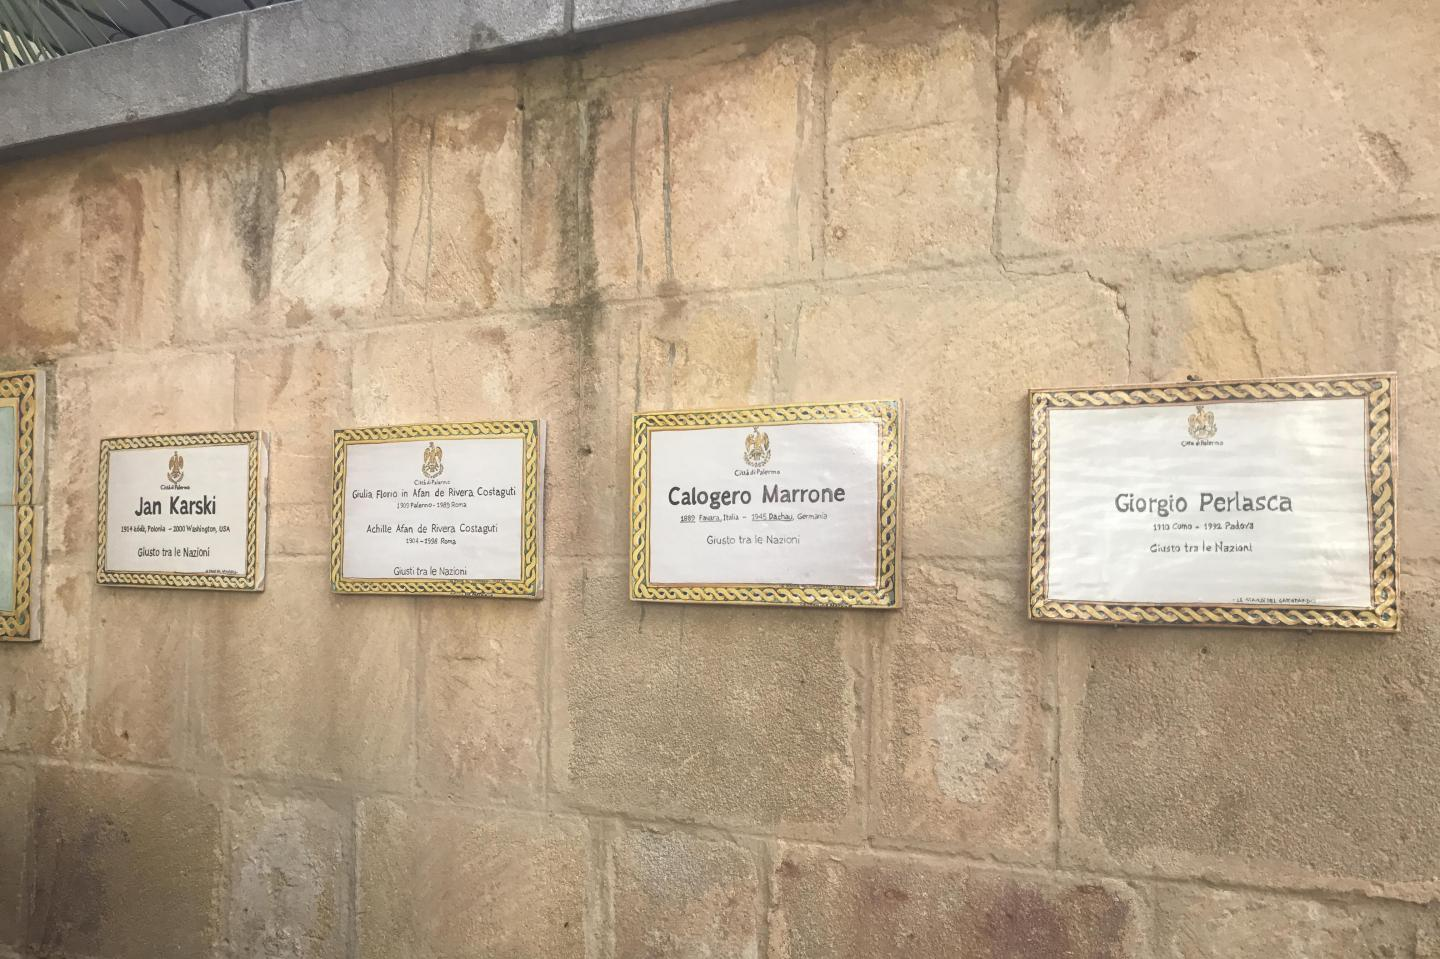 The memorial plaques dedicated to the Righteous of the Garden of Palermo